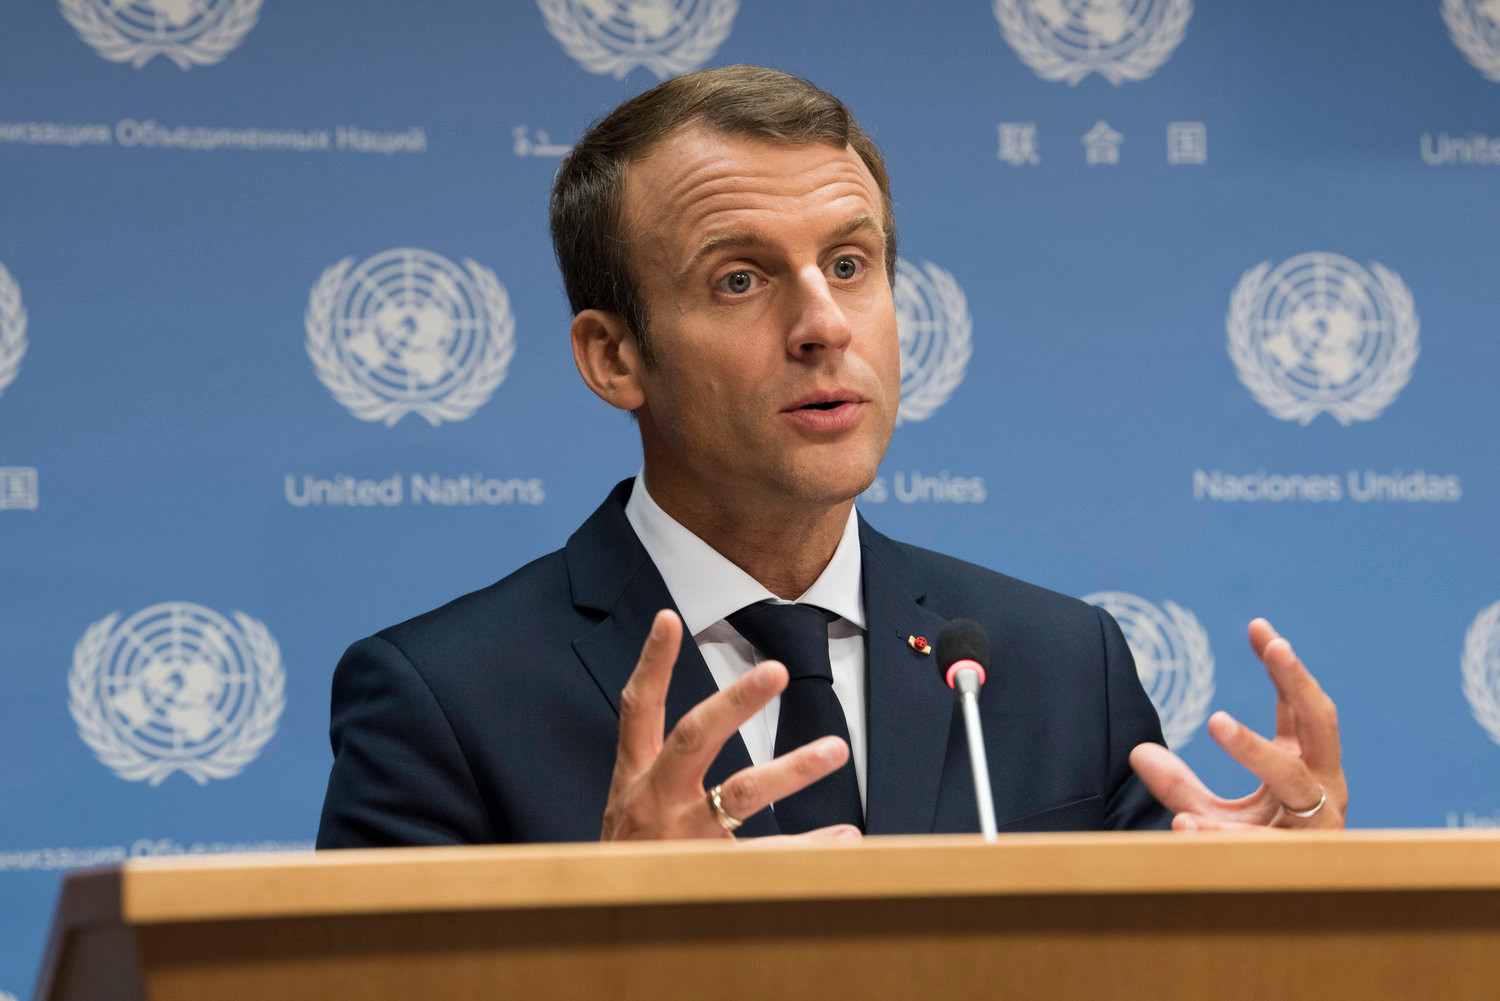 French President Emmanuel Macron at a U.N. press conference on Sept. 19, 2017.